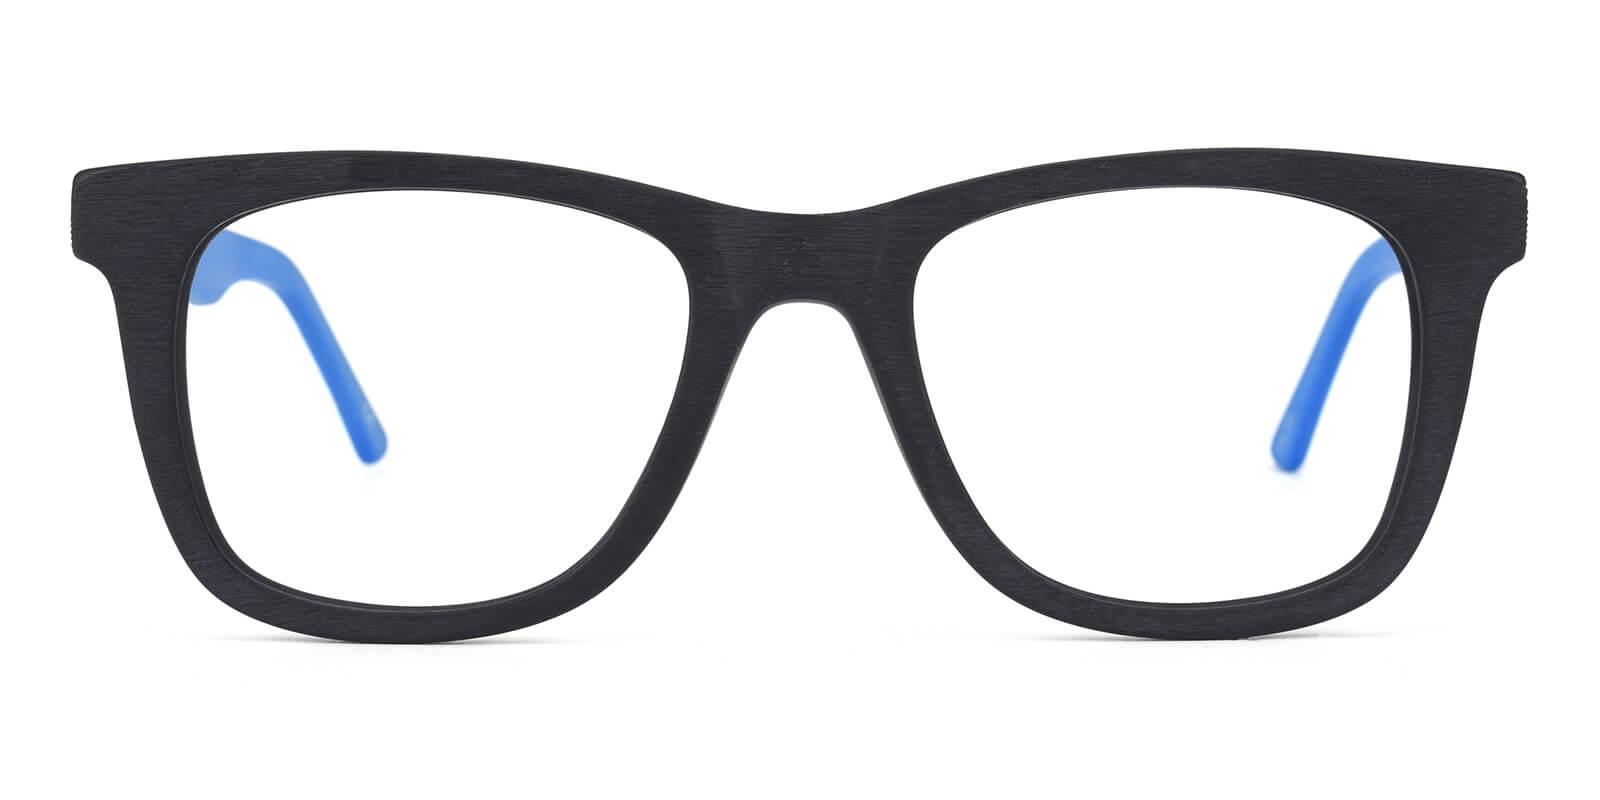 Nashive-Blue-Rectangle-Acetate-Eyeglasses-additional2